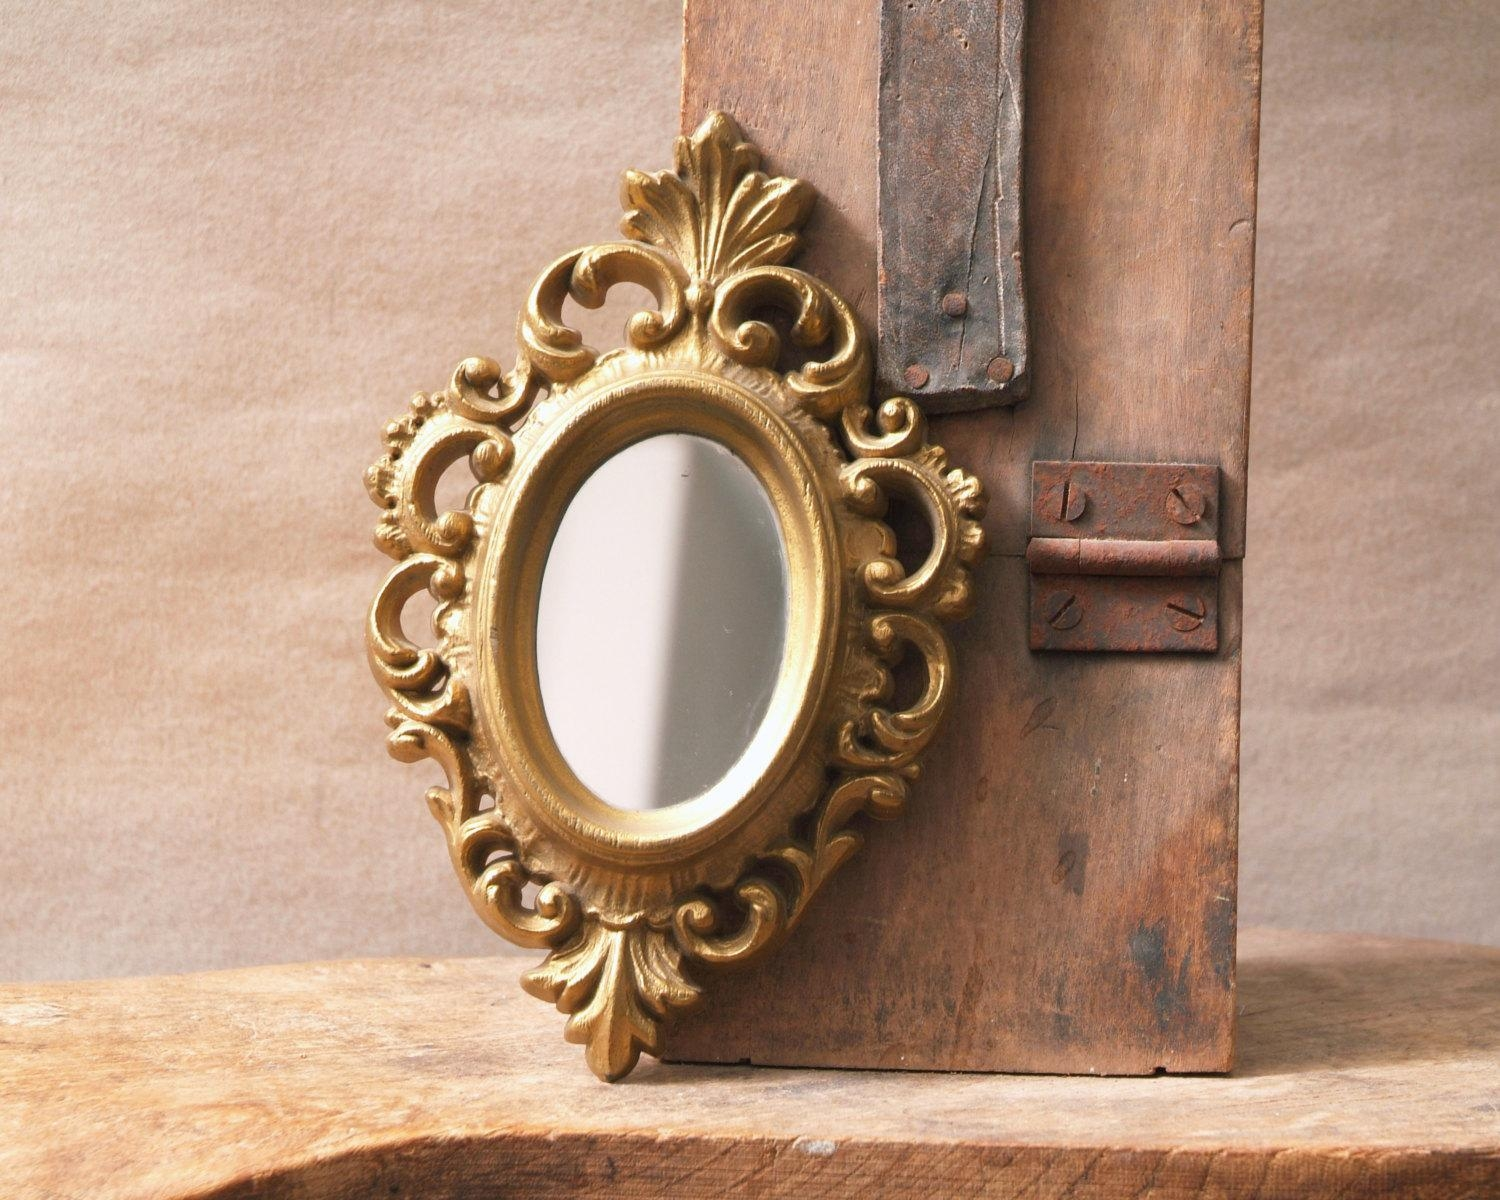 Vintage Gold Framed Mirror Small Oval Mirror Ornate Gold Within Gold Ornate Mirrors (View 19 of 20)